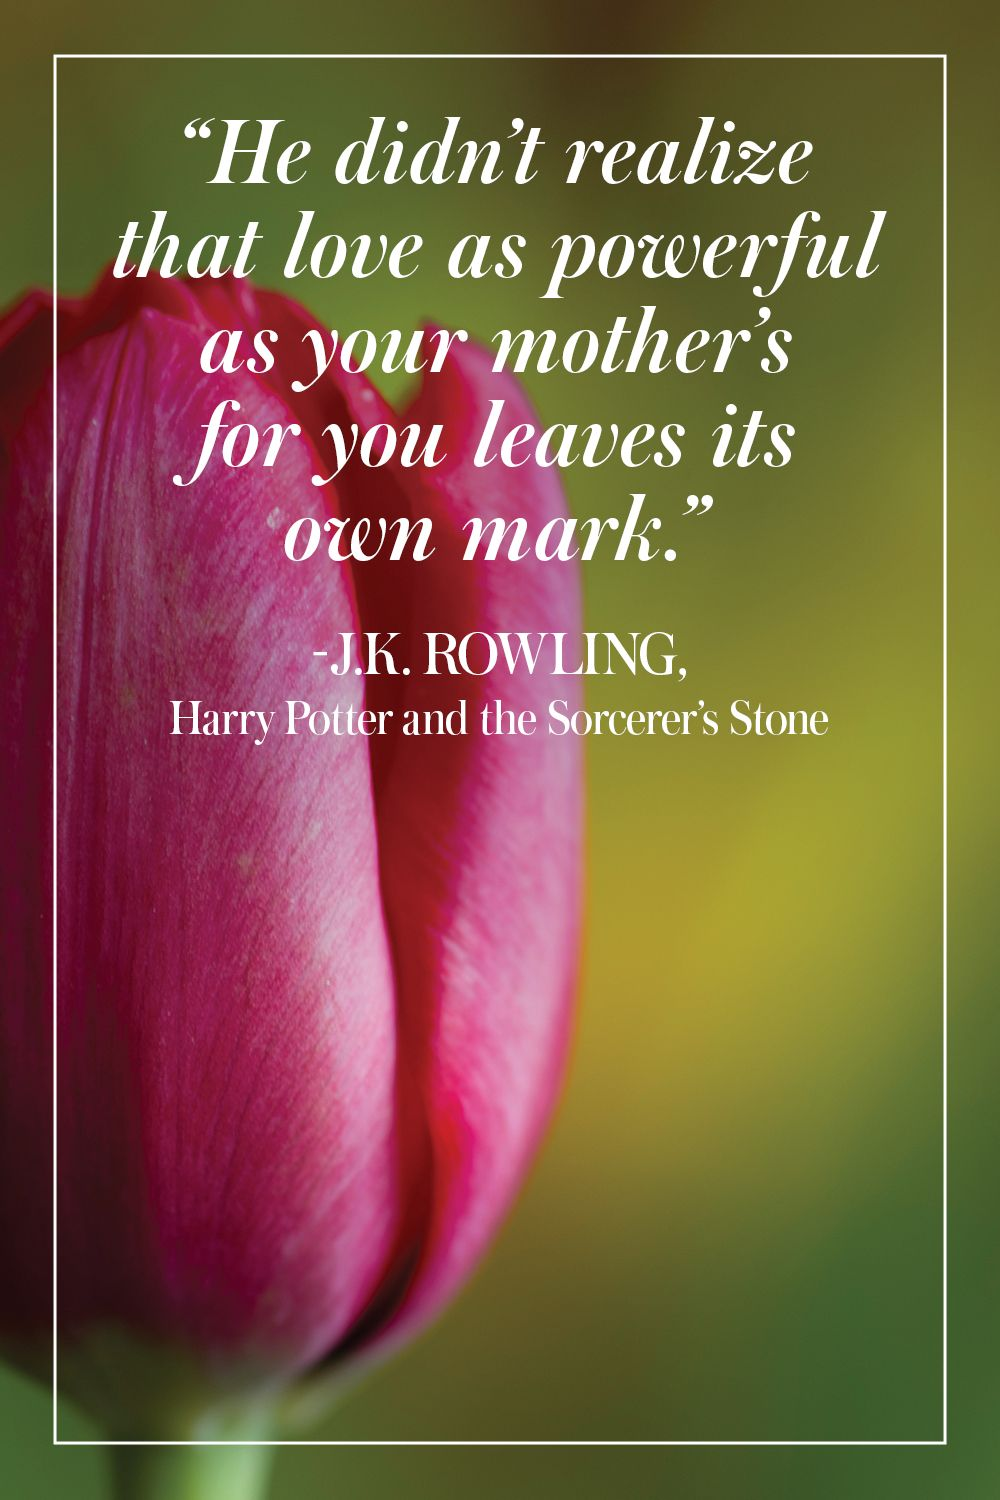 Powerful Love Quotes 17 Best Mother's Day Quotes  Beautiful Mom Quotes For Mother's Day